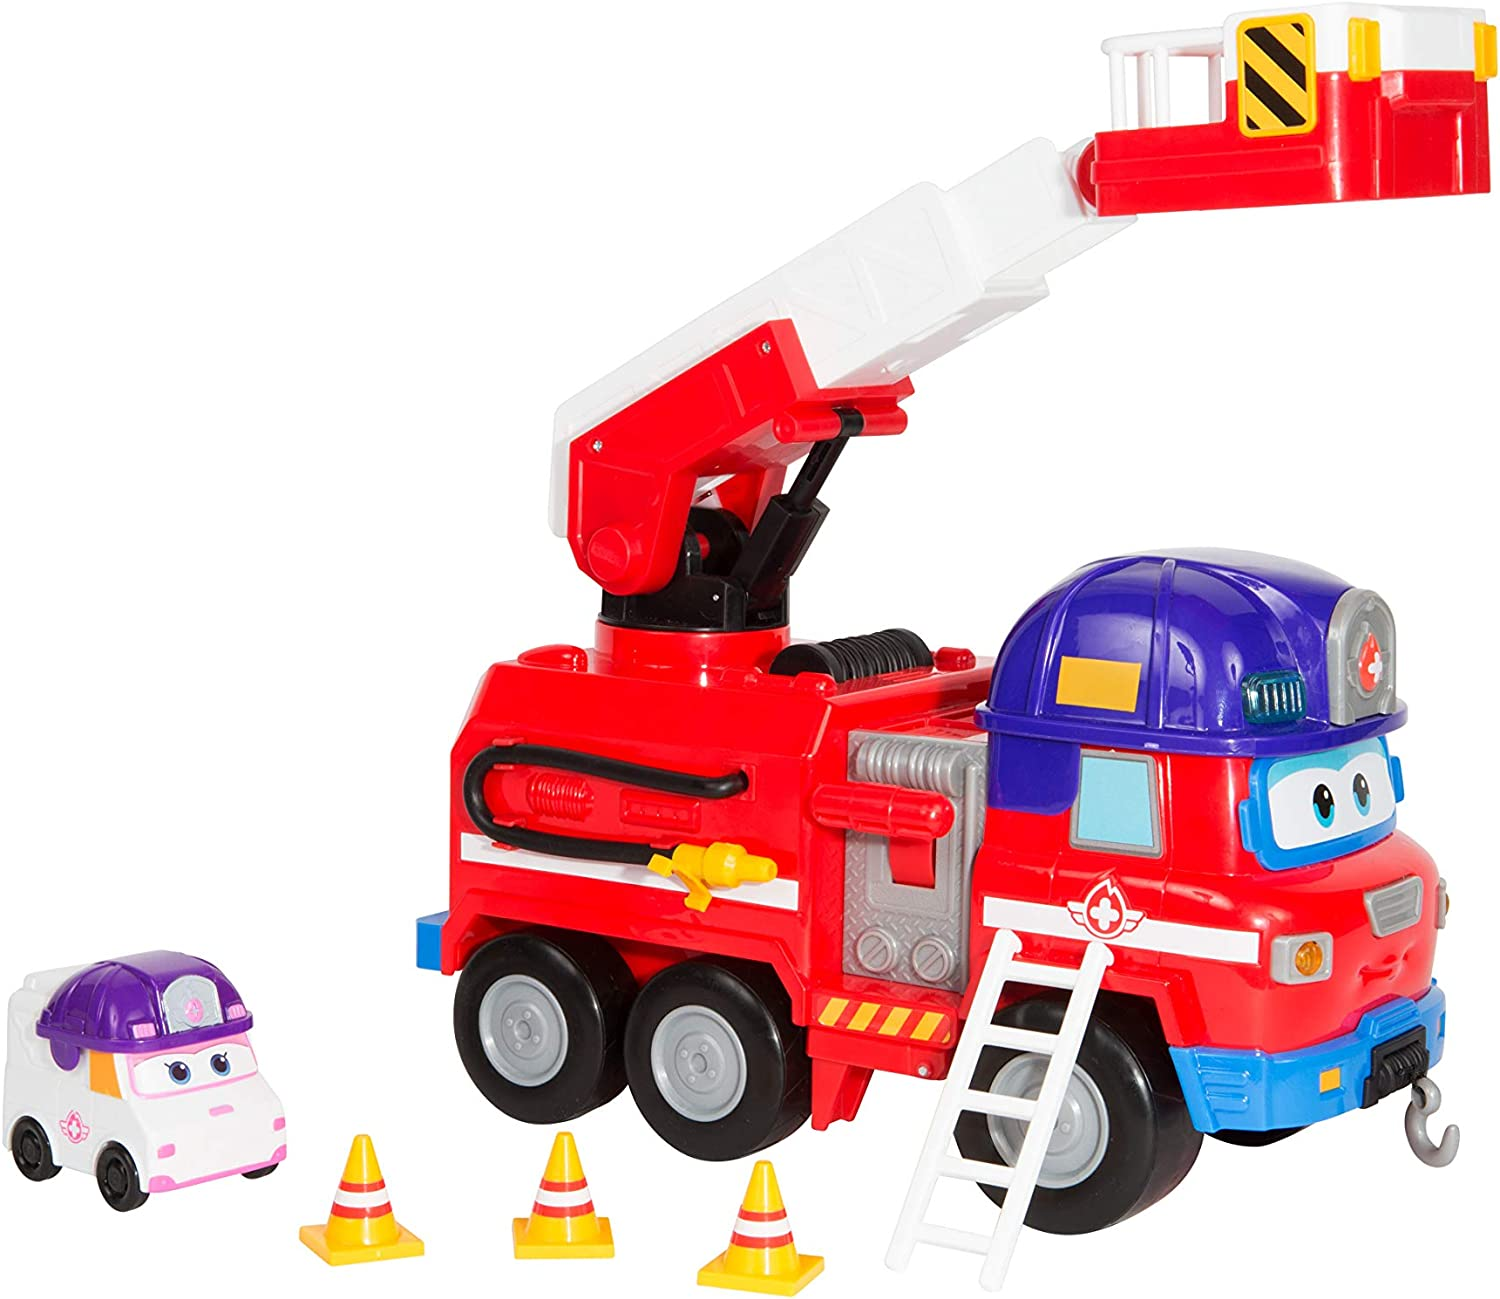 Superwings Rescue Riders Toy Car Set